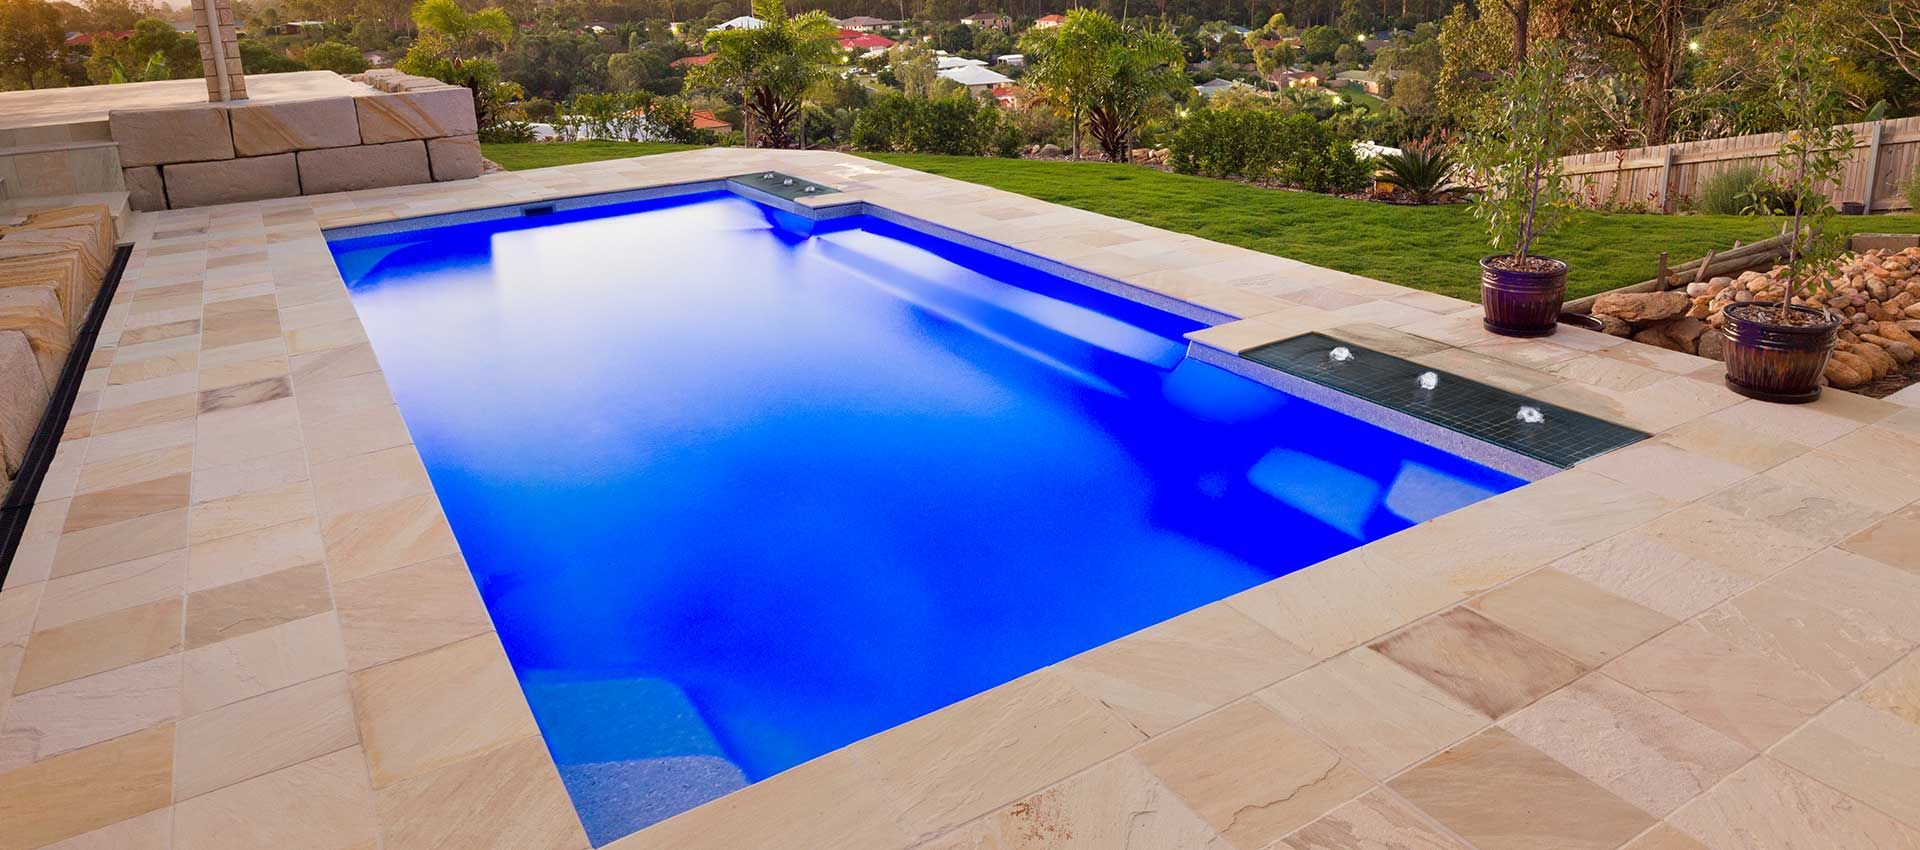 Vice President Fibreglass Pool - Swimming Pool Wa - Freedom ... serapportantà Freedom Piscine